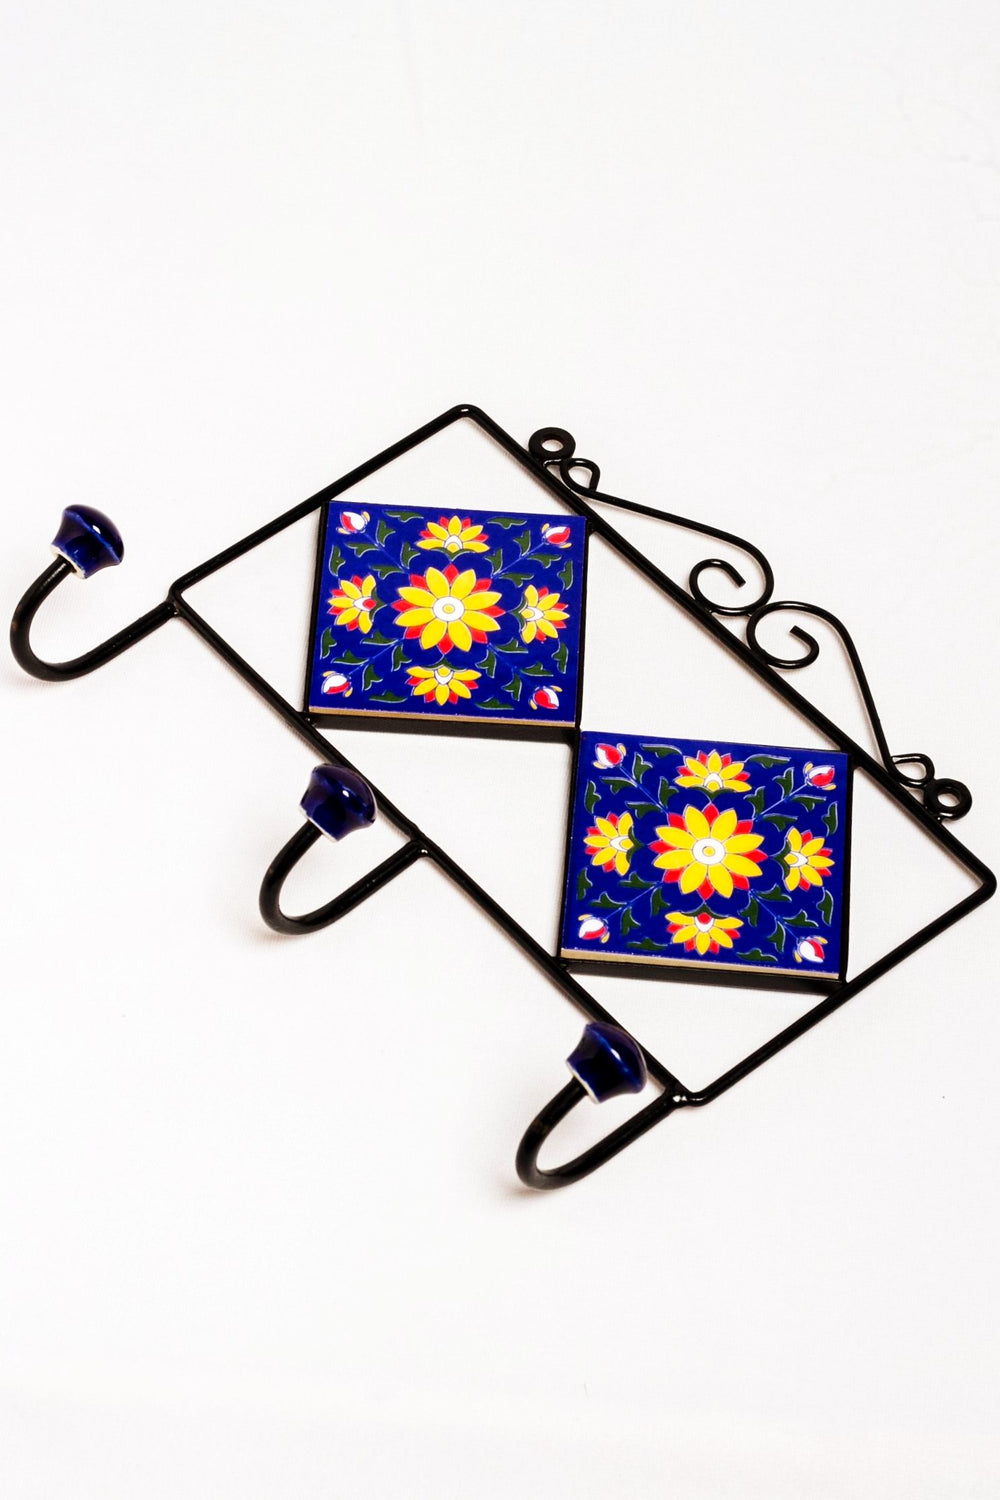 2 tiled 3 wall hook frame blue with yellow and blue floral motif